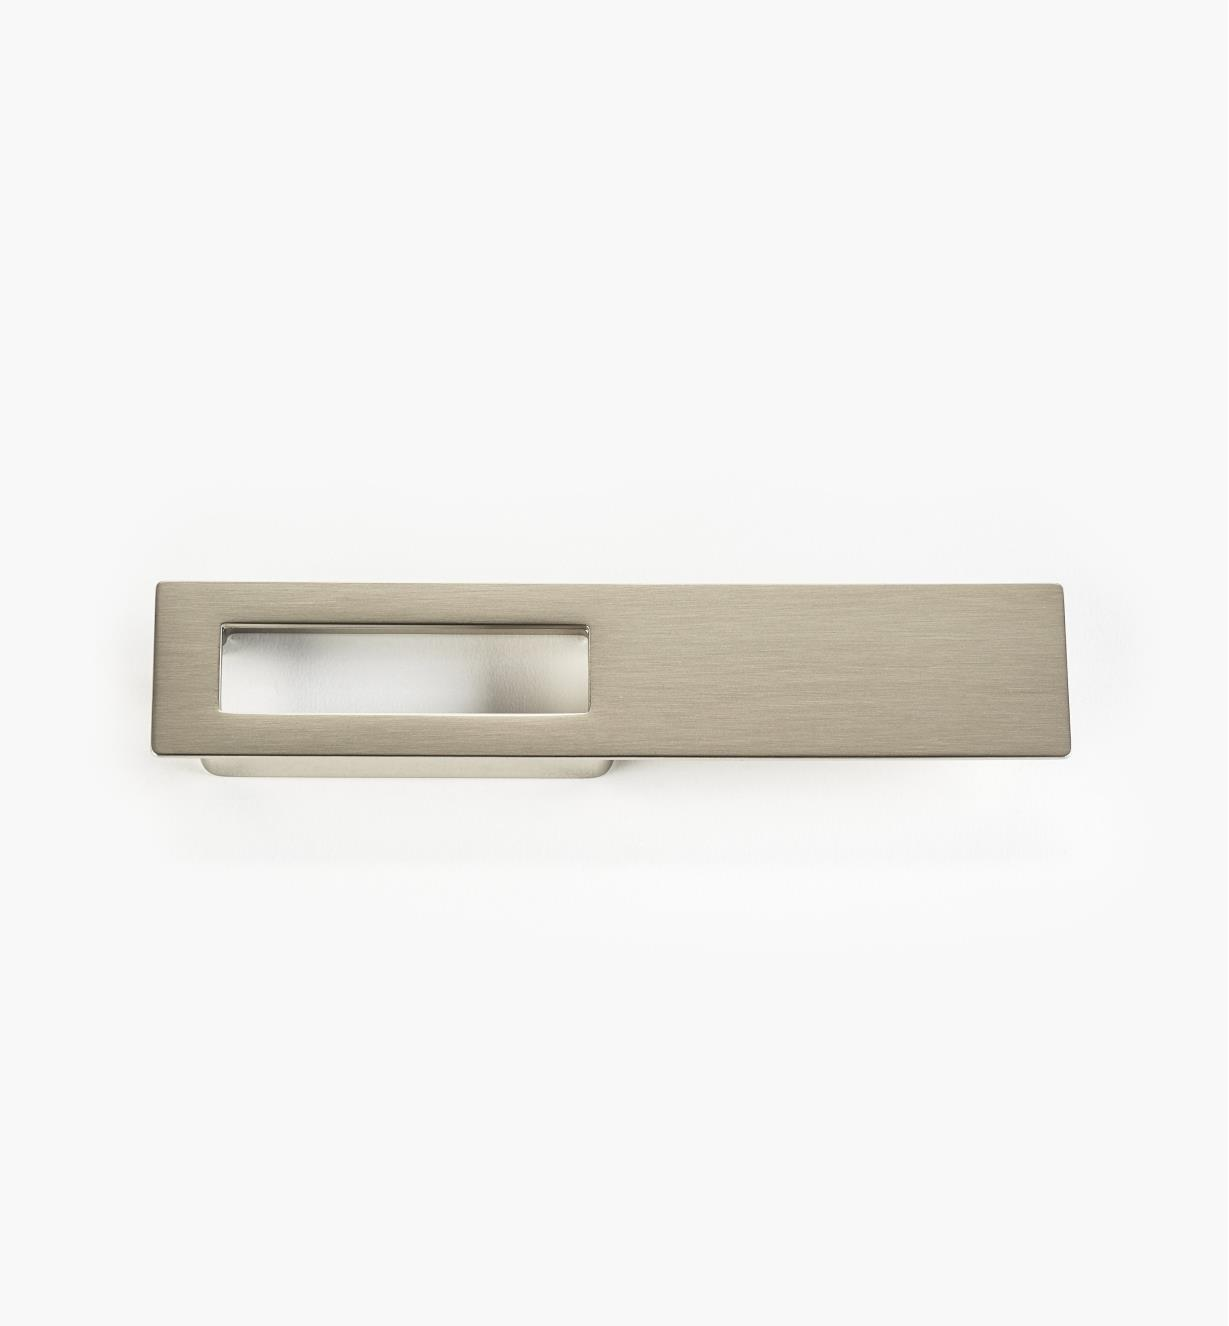 02W1678 - Satin Nickel Mortise Pull